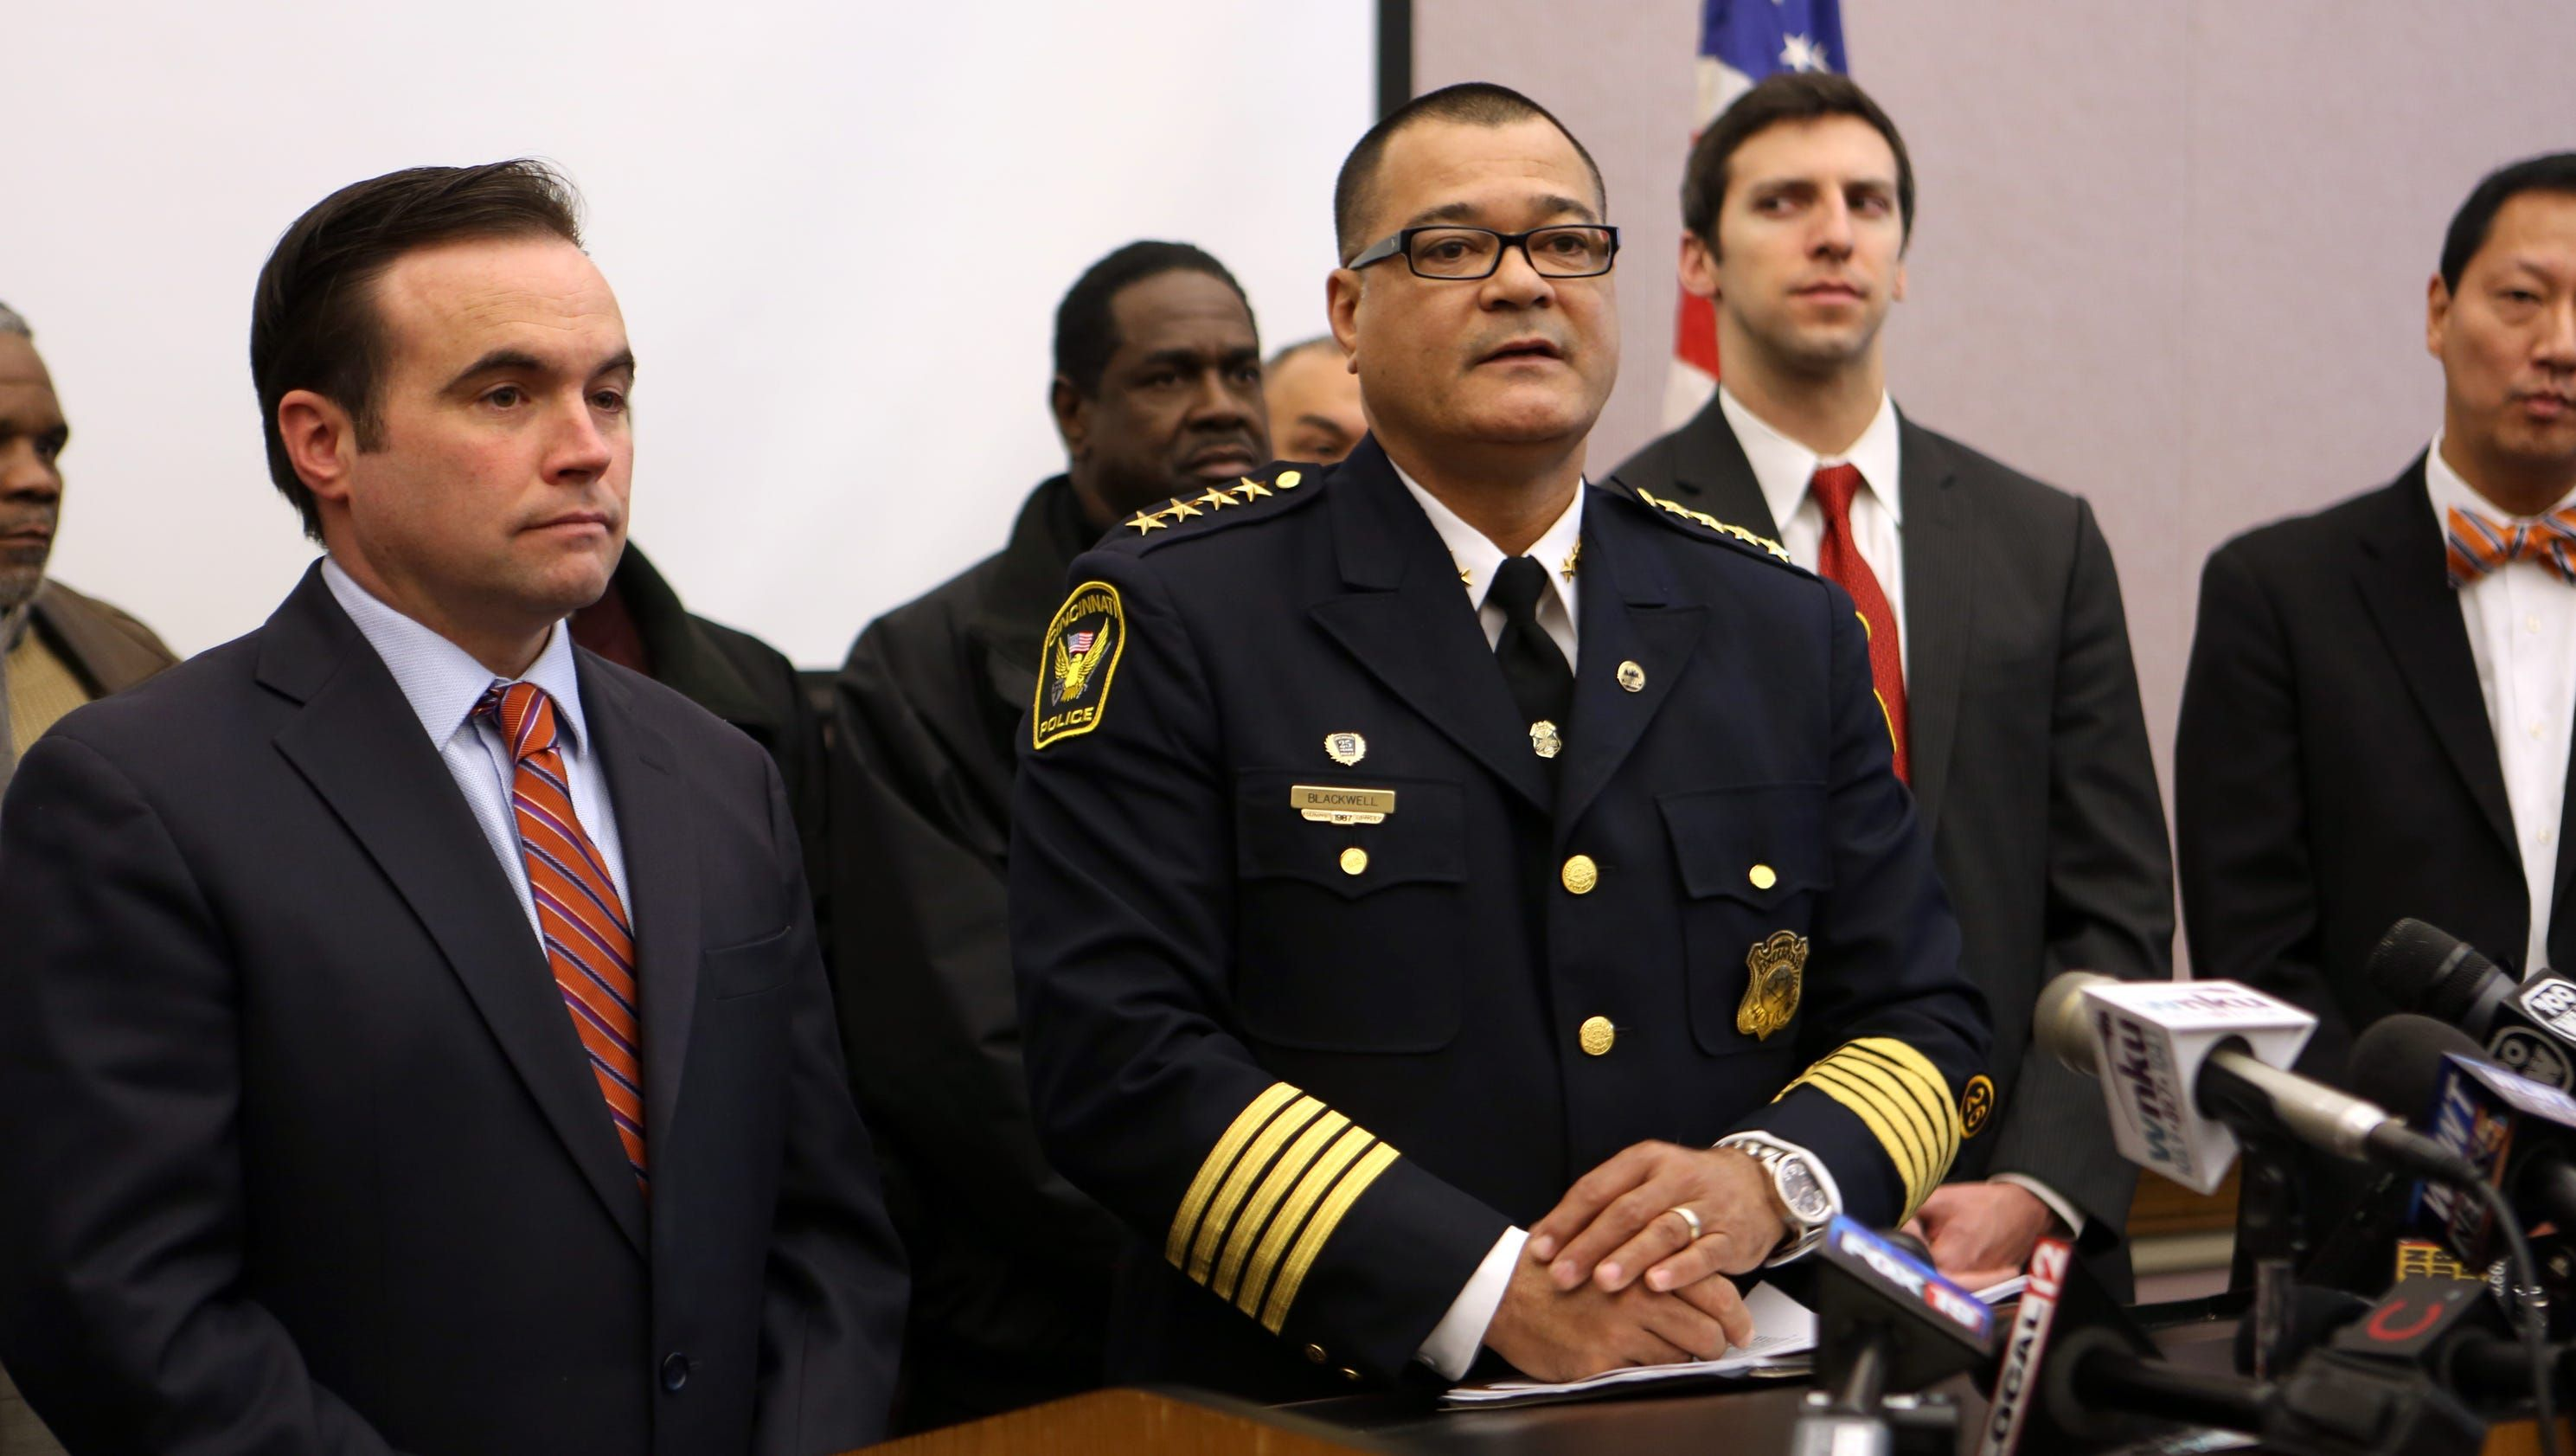 Blackwell family: Cranley's emails prove firing racially motivated